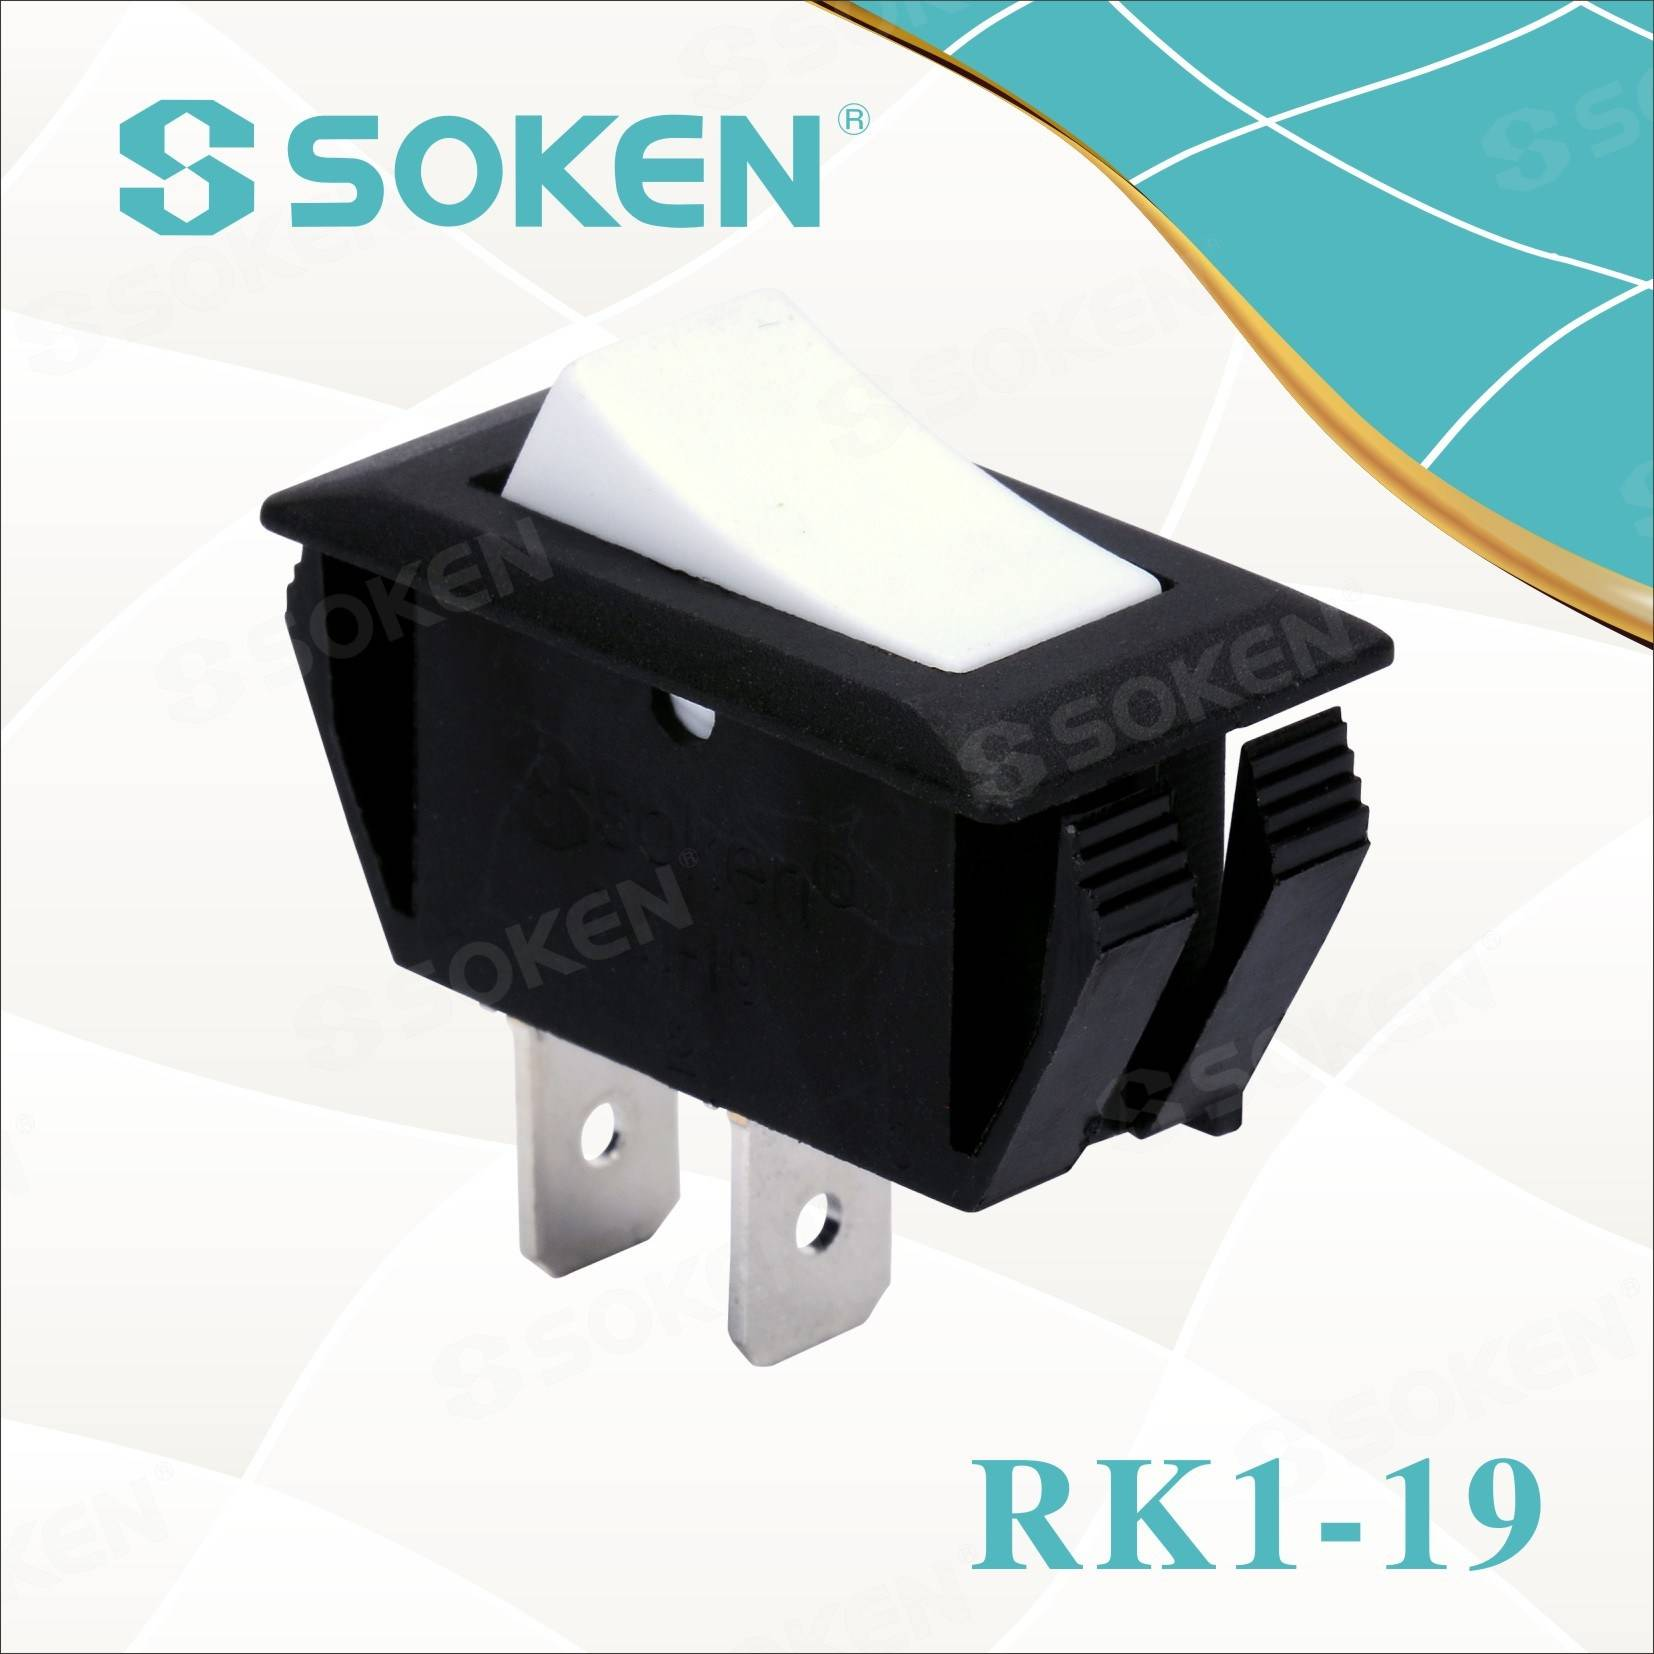 Soken 2 Pin Rocker Switch Rk1-19 1x1